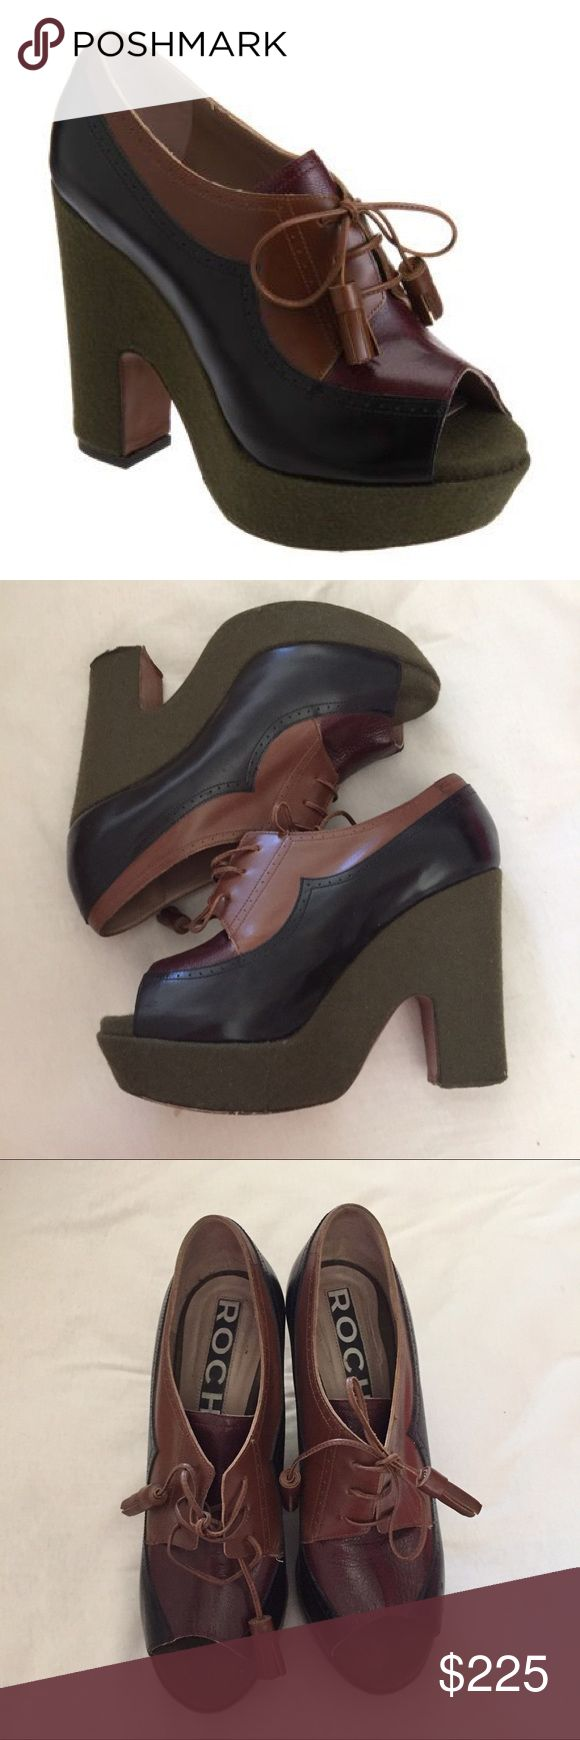 """Rochas Color Block Peep Toe Oxford Wedge Platforms This is a super cute pair of Rochas color Block oxfords. Size 39. Peep toe Lace ups. Heel 4.5"""" front platform 1.5"""". Great condition. Rochas  Shoes Platforms"""